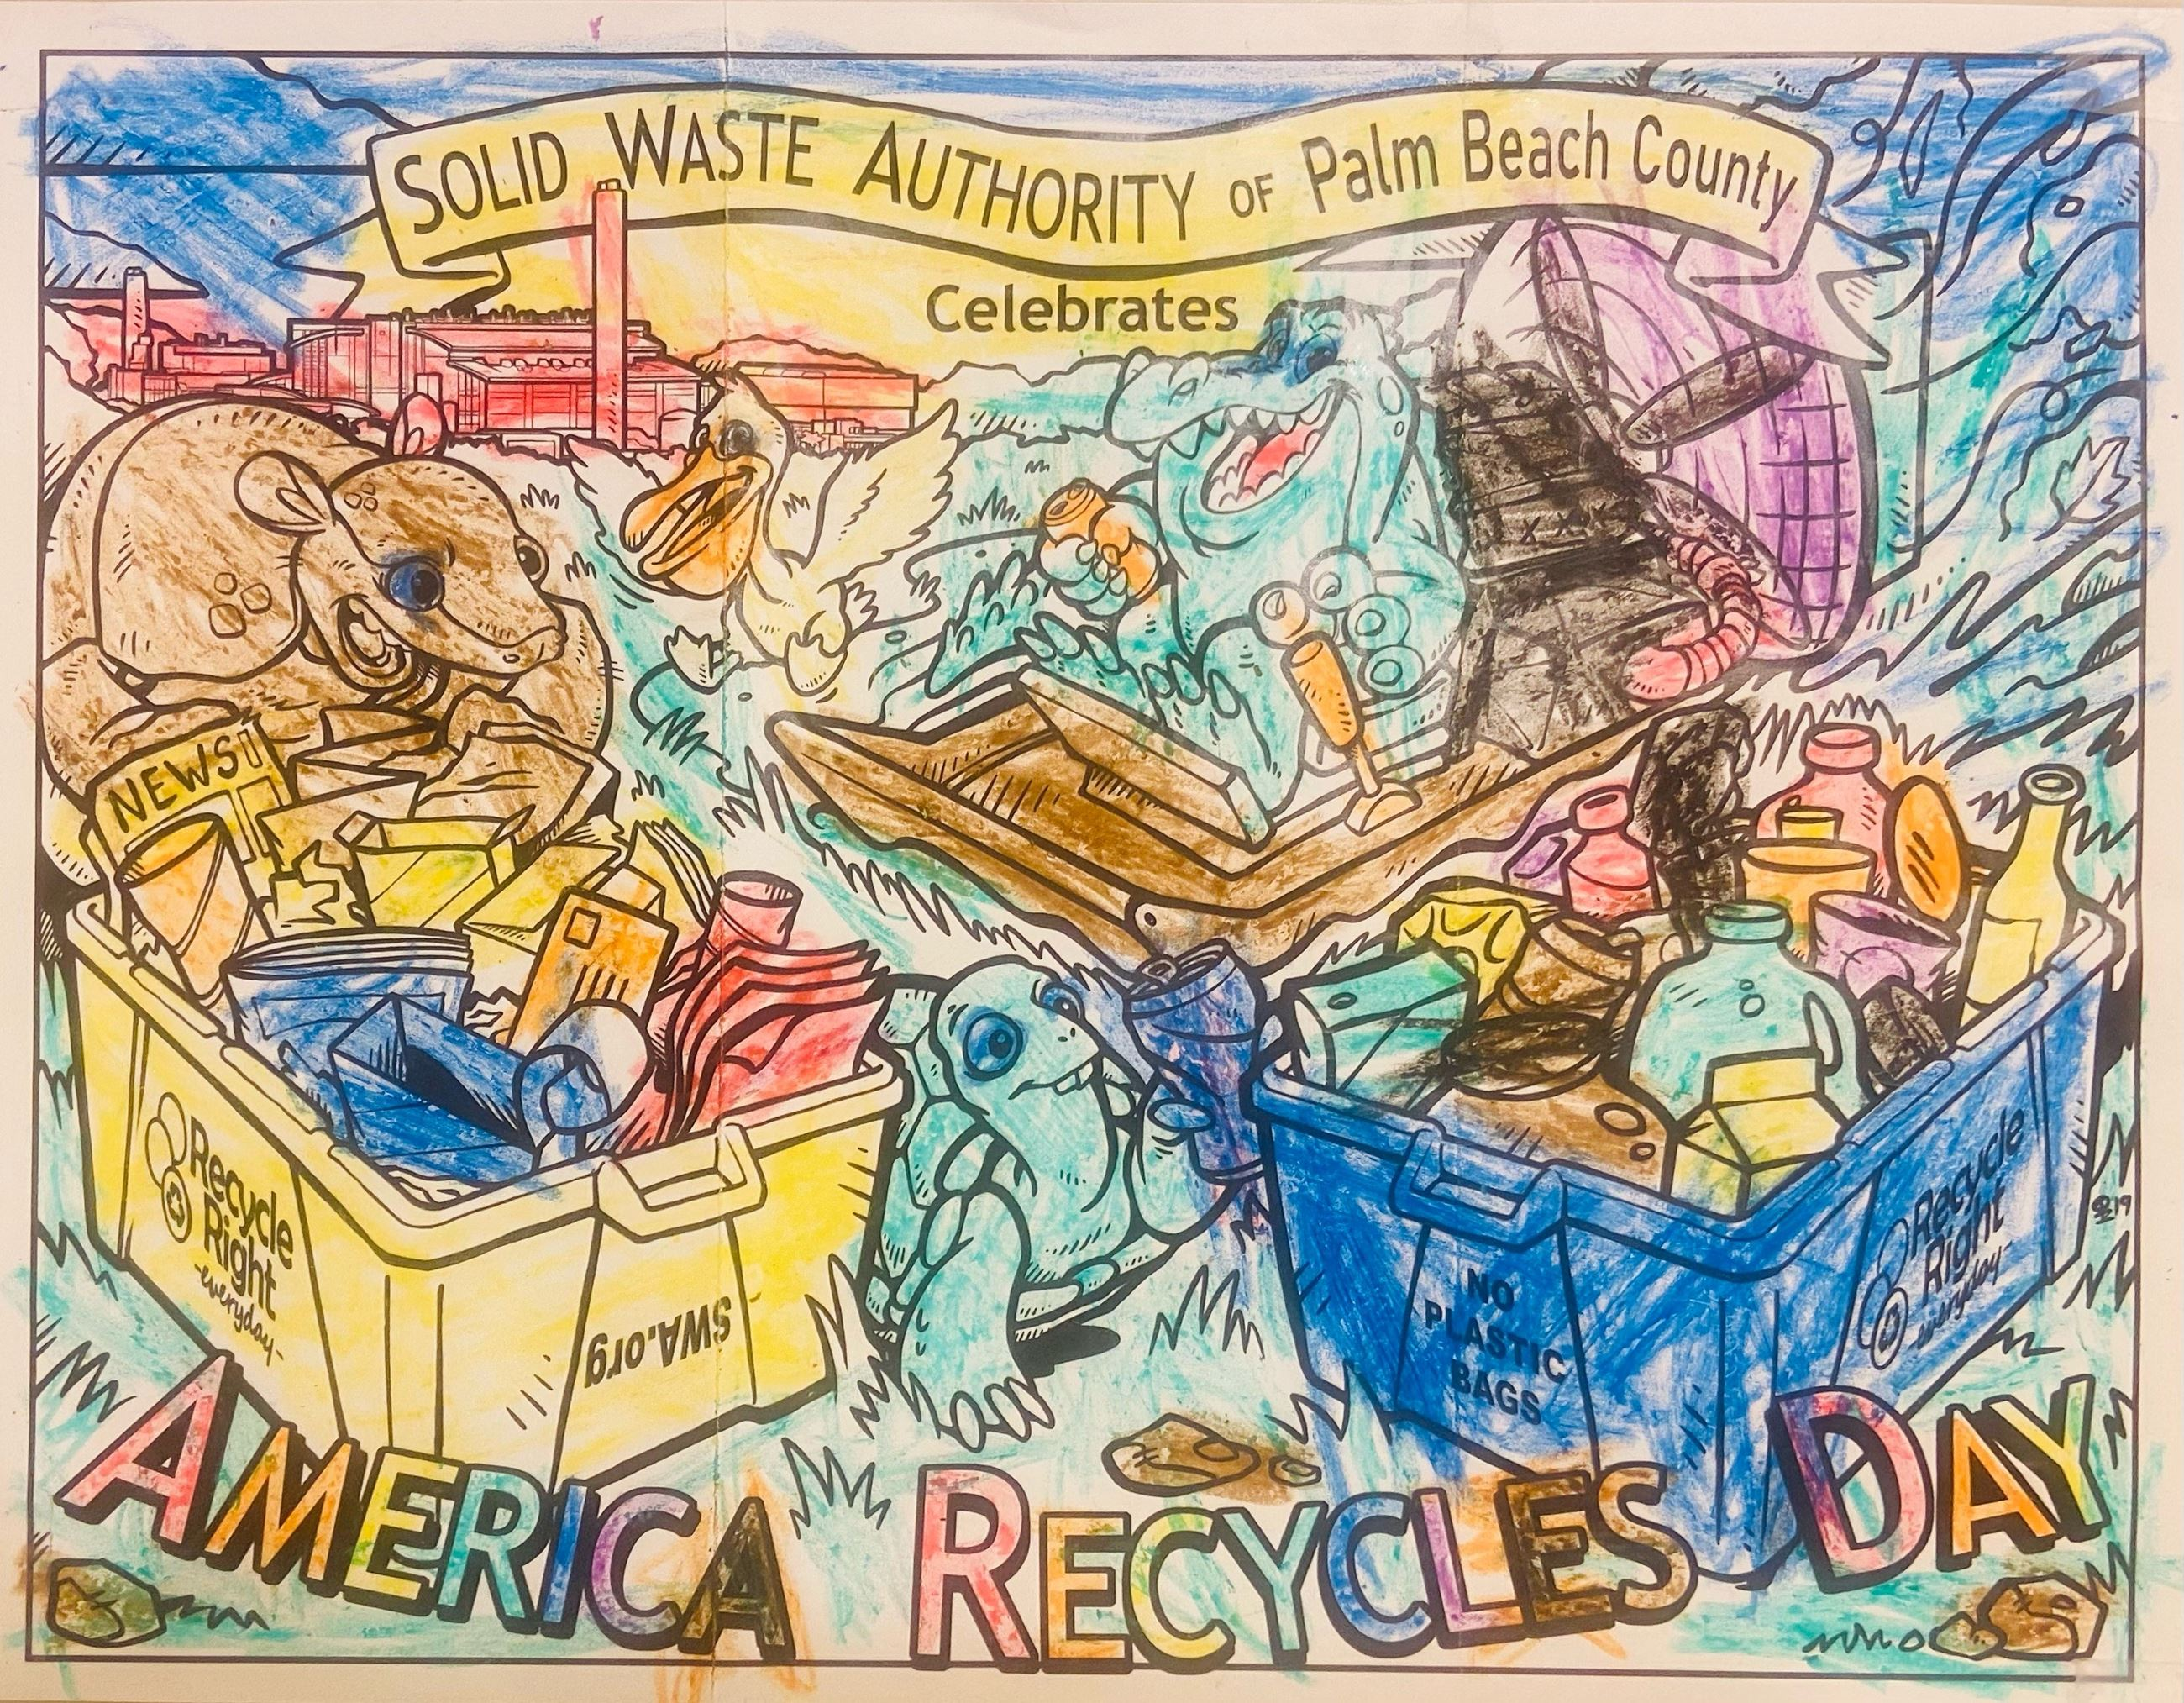 2020 Swa America Recycles Day Coloring Contest Solid Waste Authority Of Palm Beach County Fl